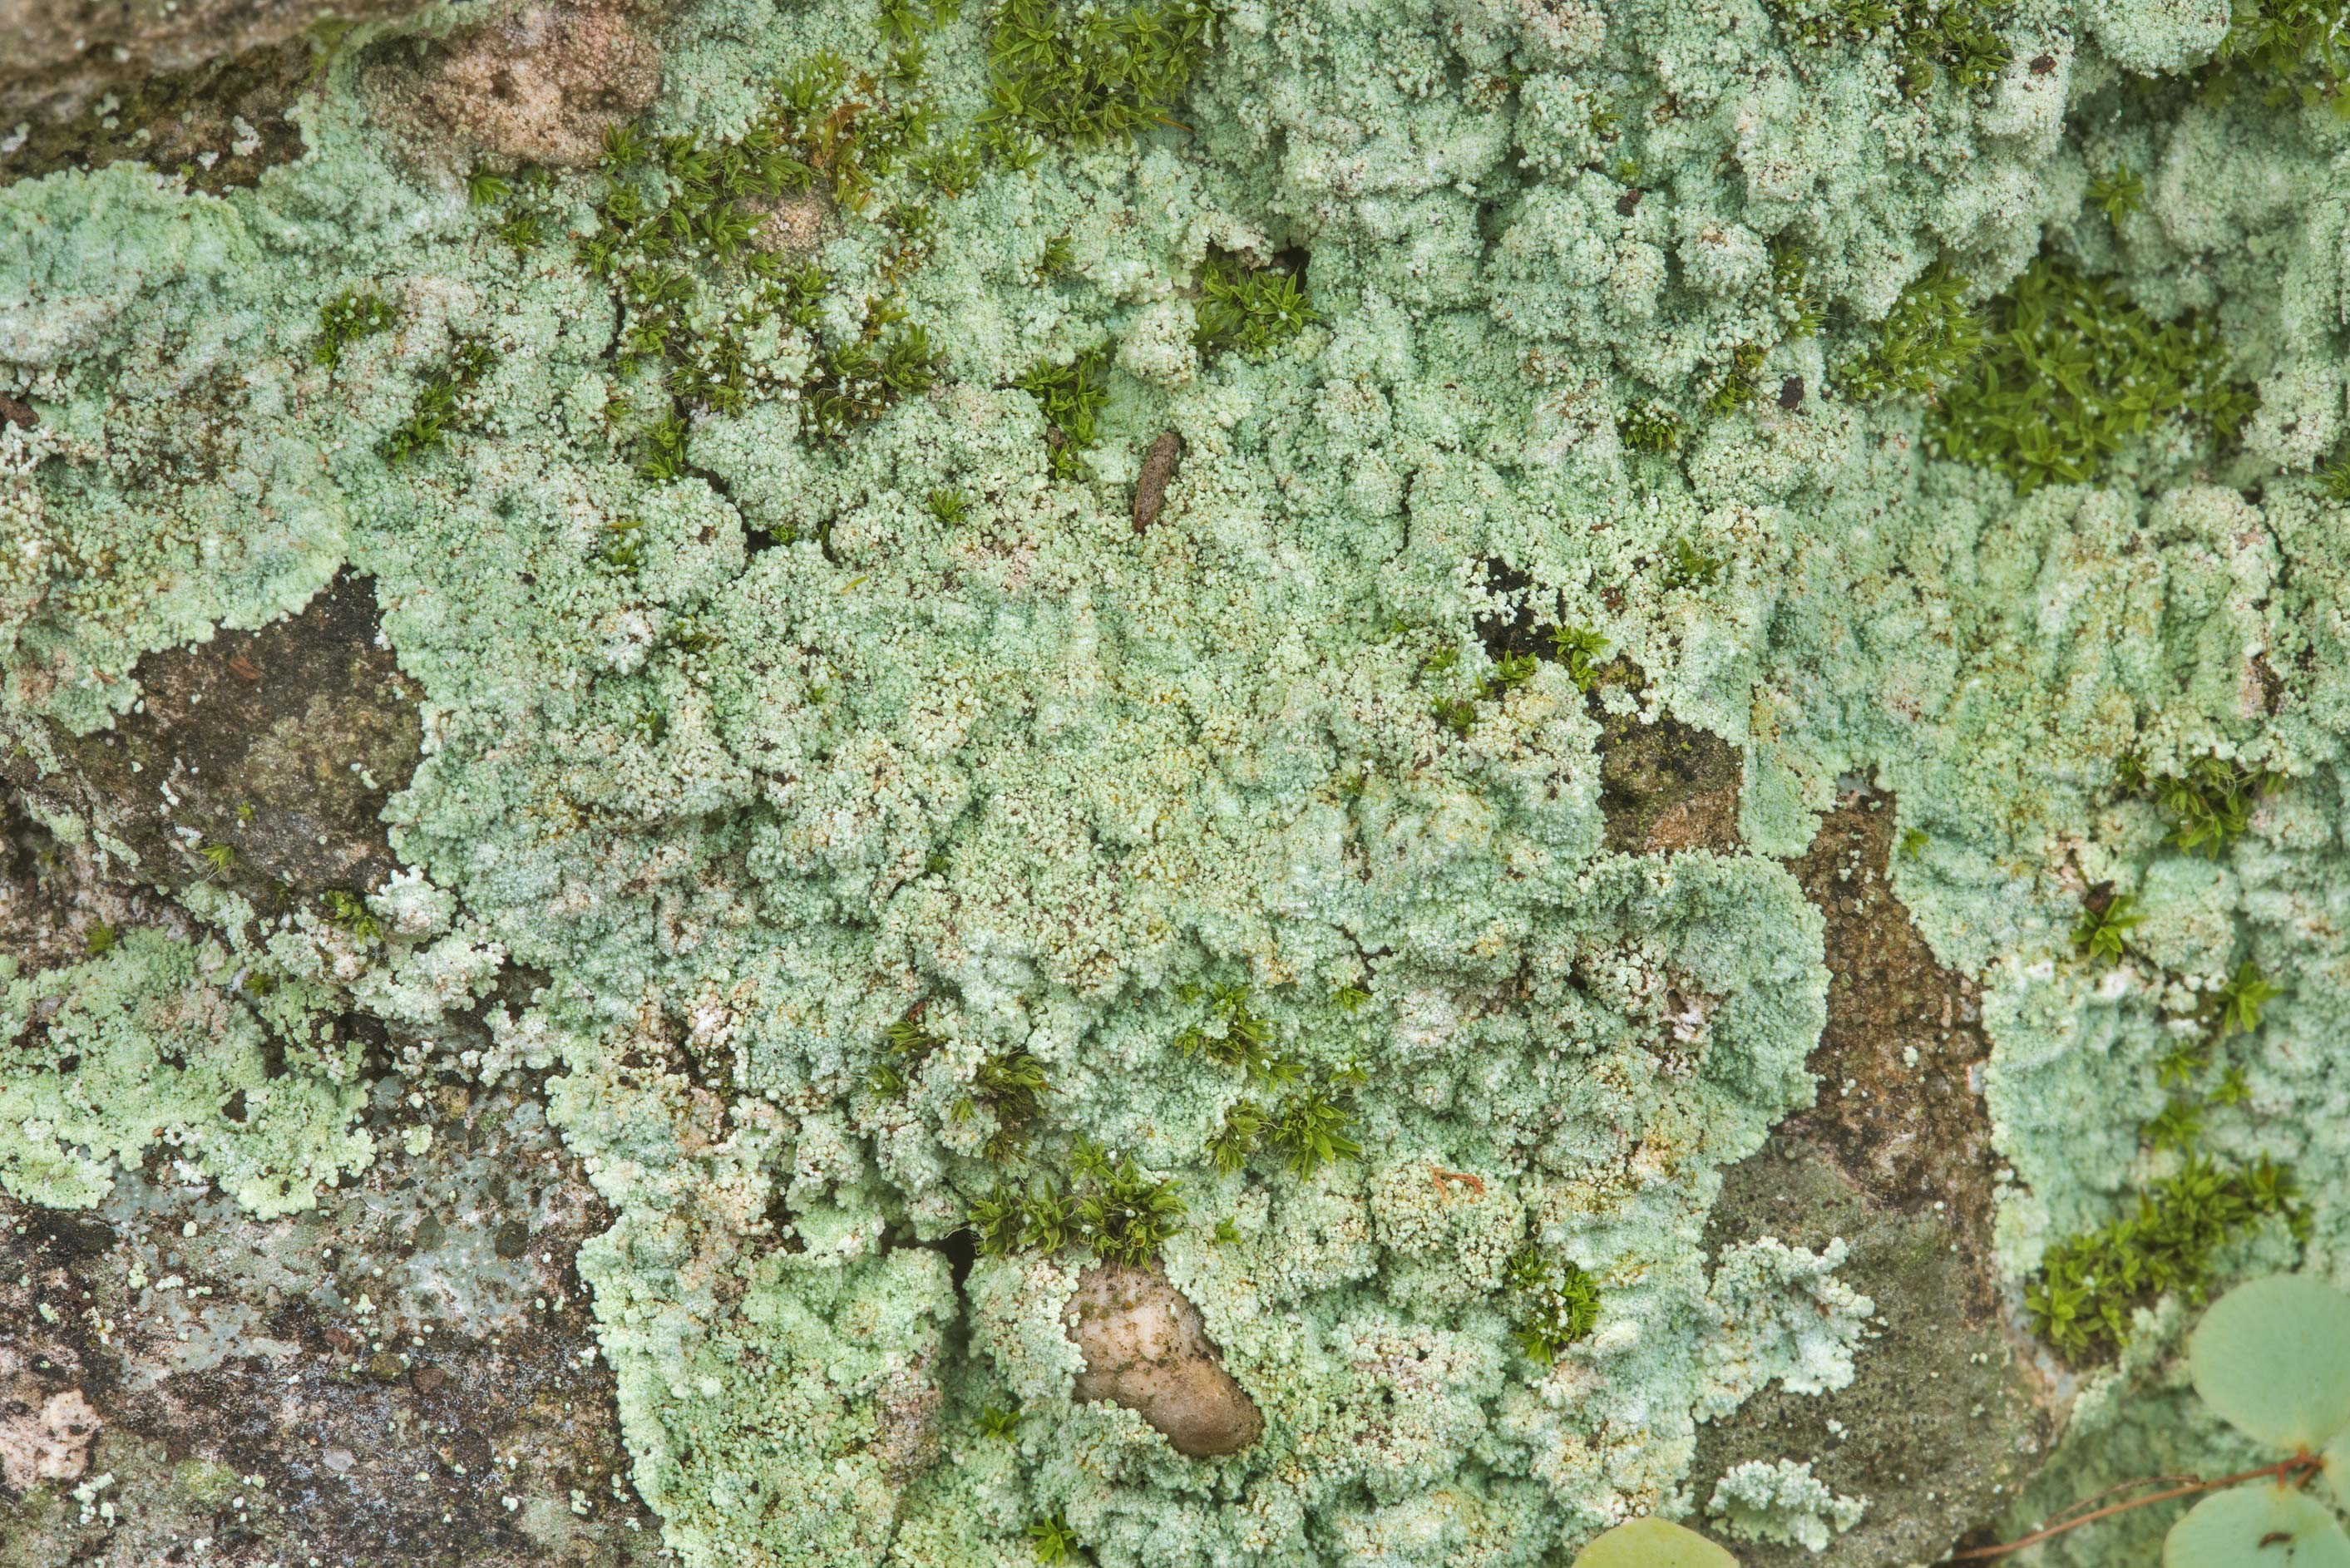 Dust lichen (Lepraria) on shaded rocks in a red...Falls State Park. Johnson City, Texas